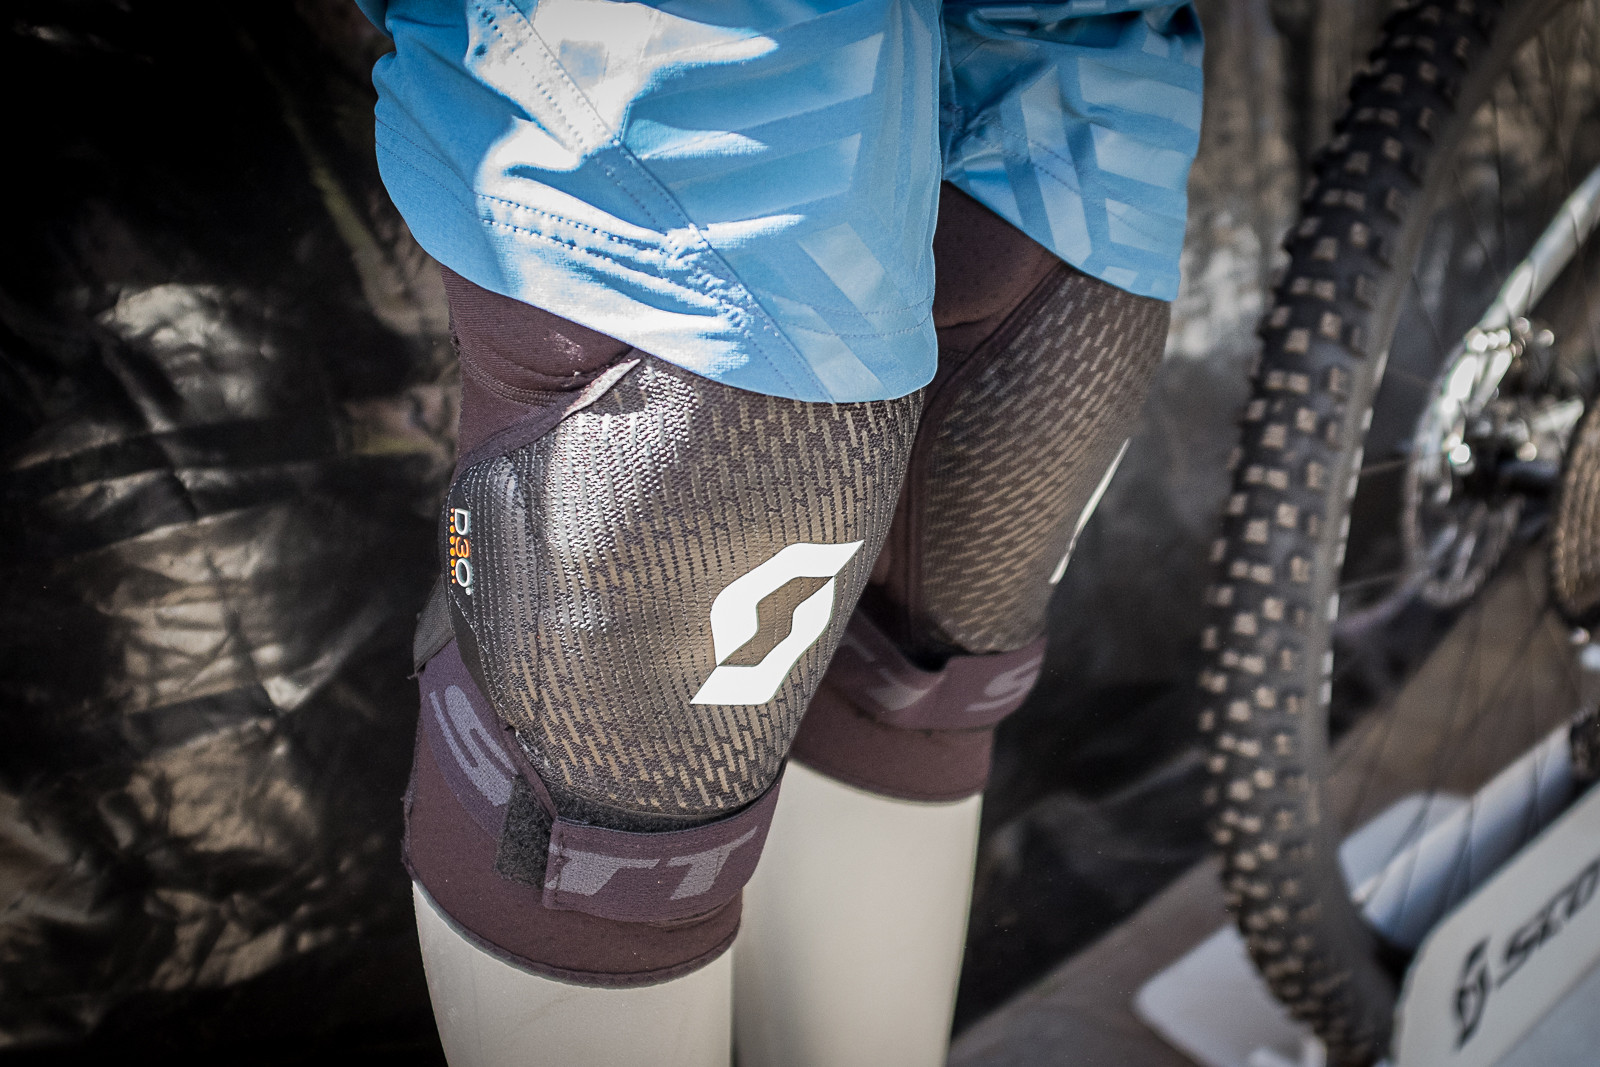 Scott Grenade EVO Knee Guard - PIT BITS - New 2017 Products from Crankworx Whistler - Mountain Biking Pictures - Vital MTB